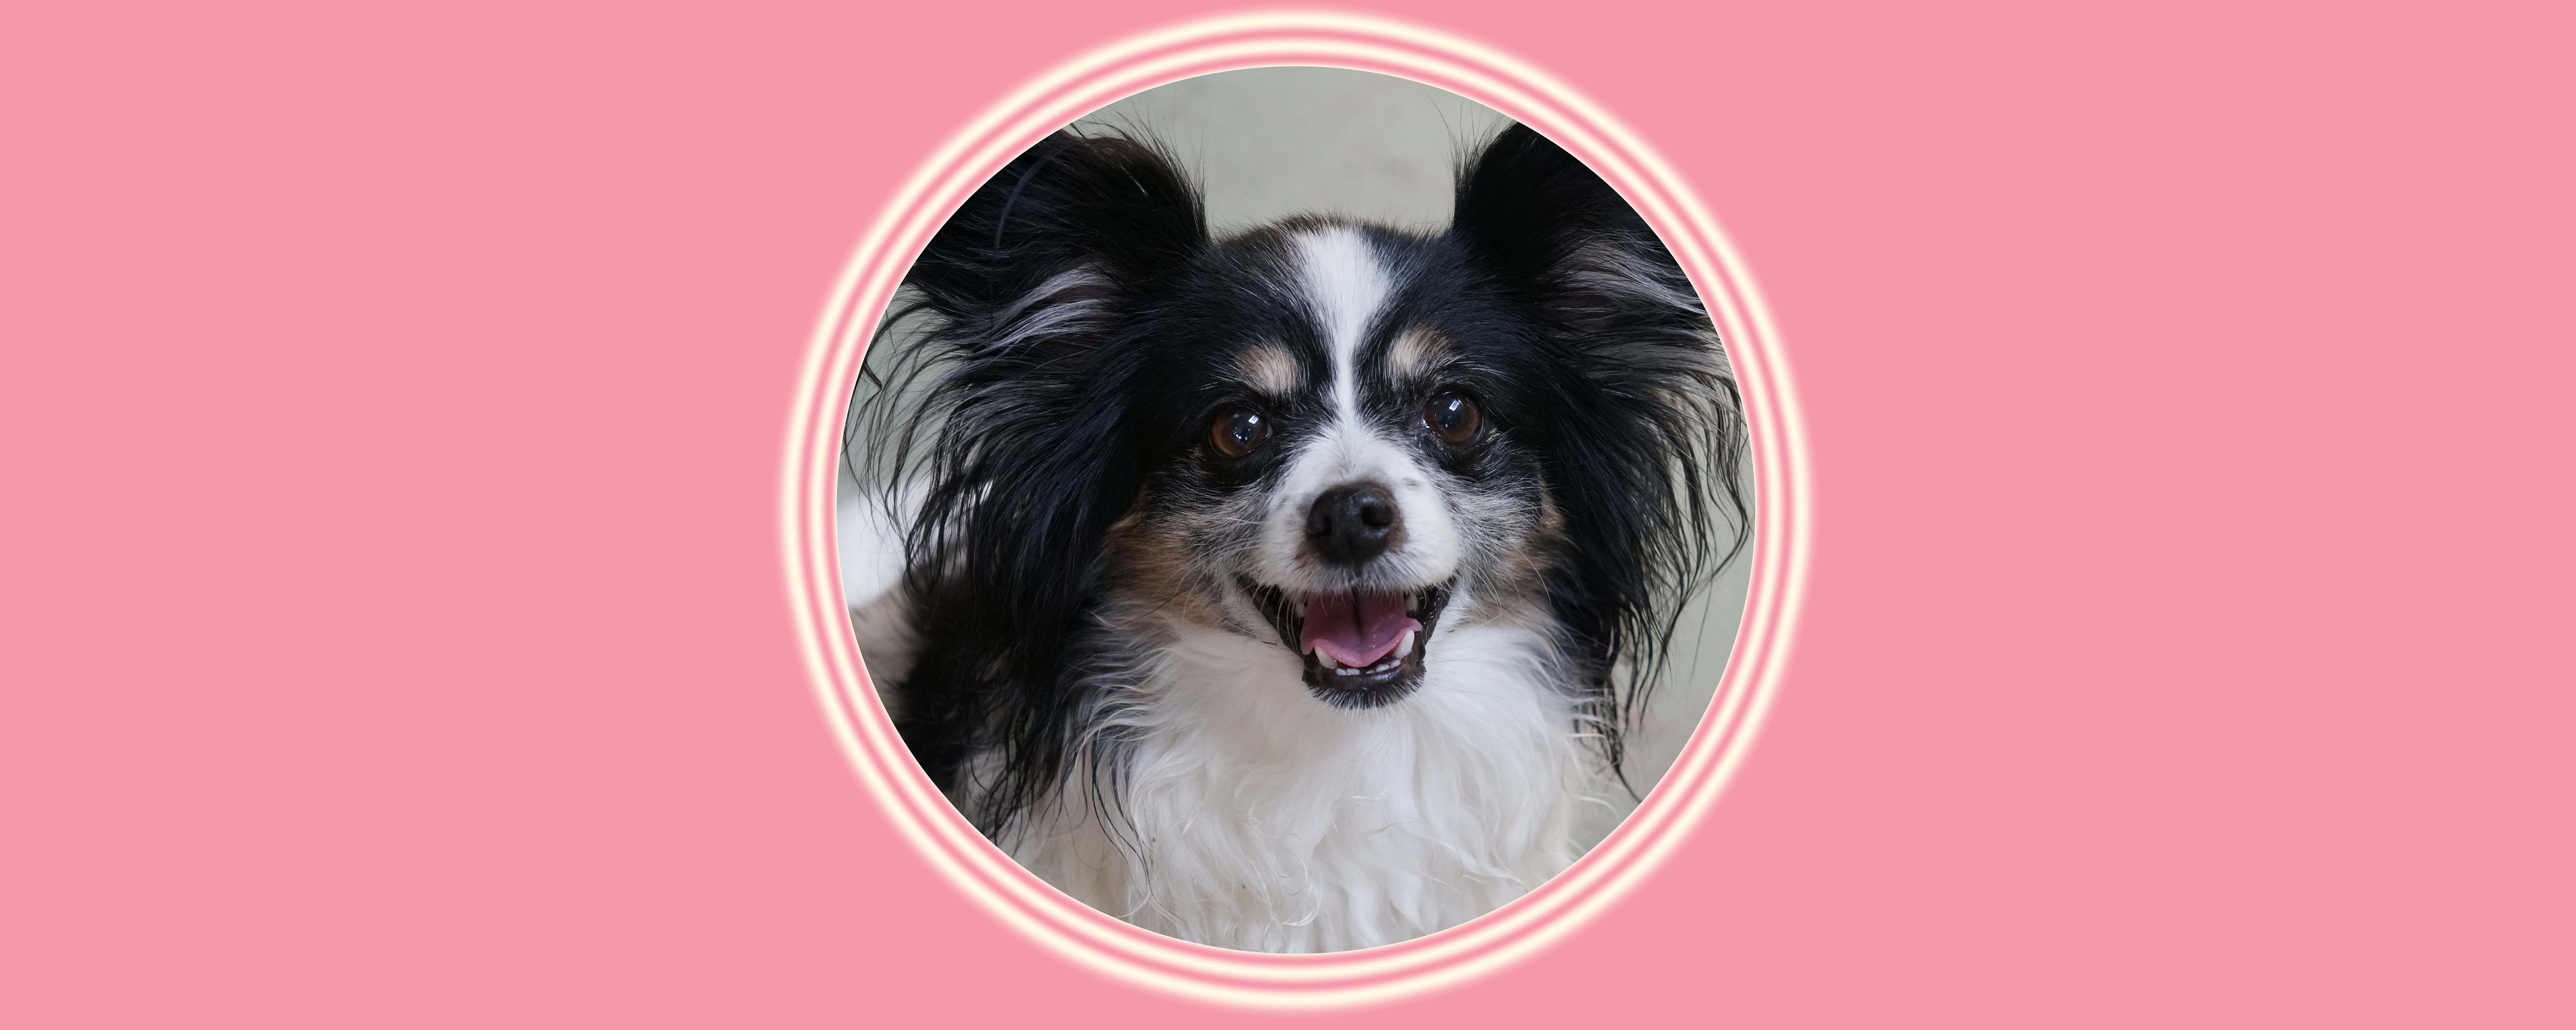 Dog of the Week: Gracie S.